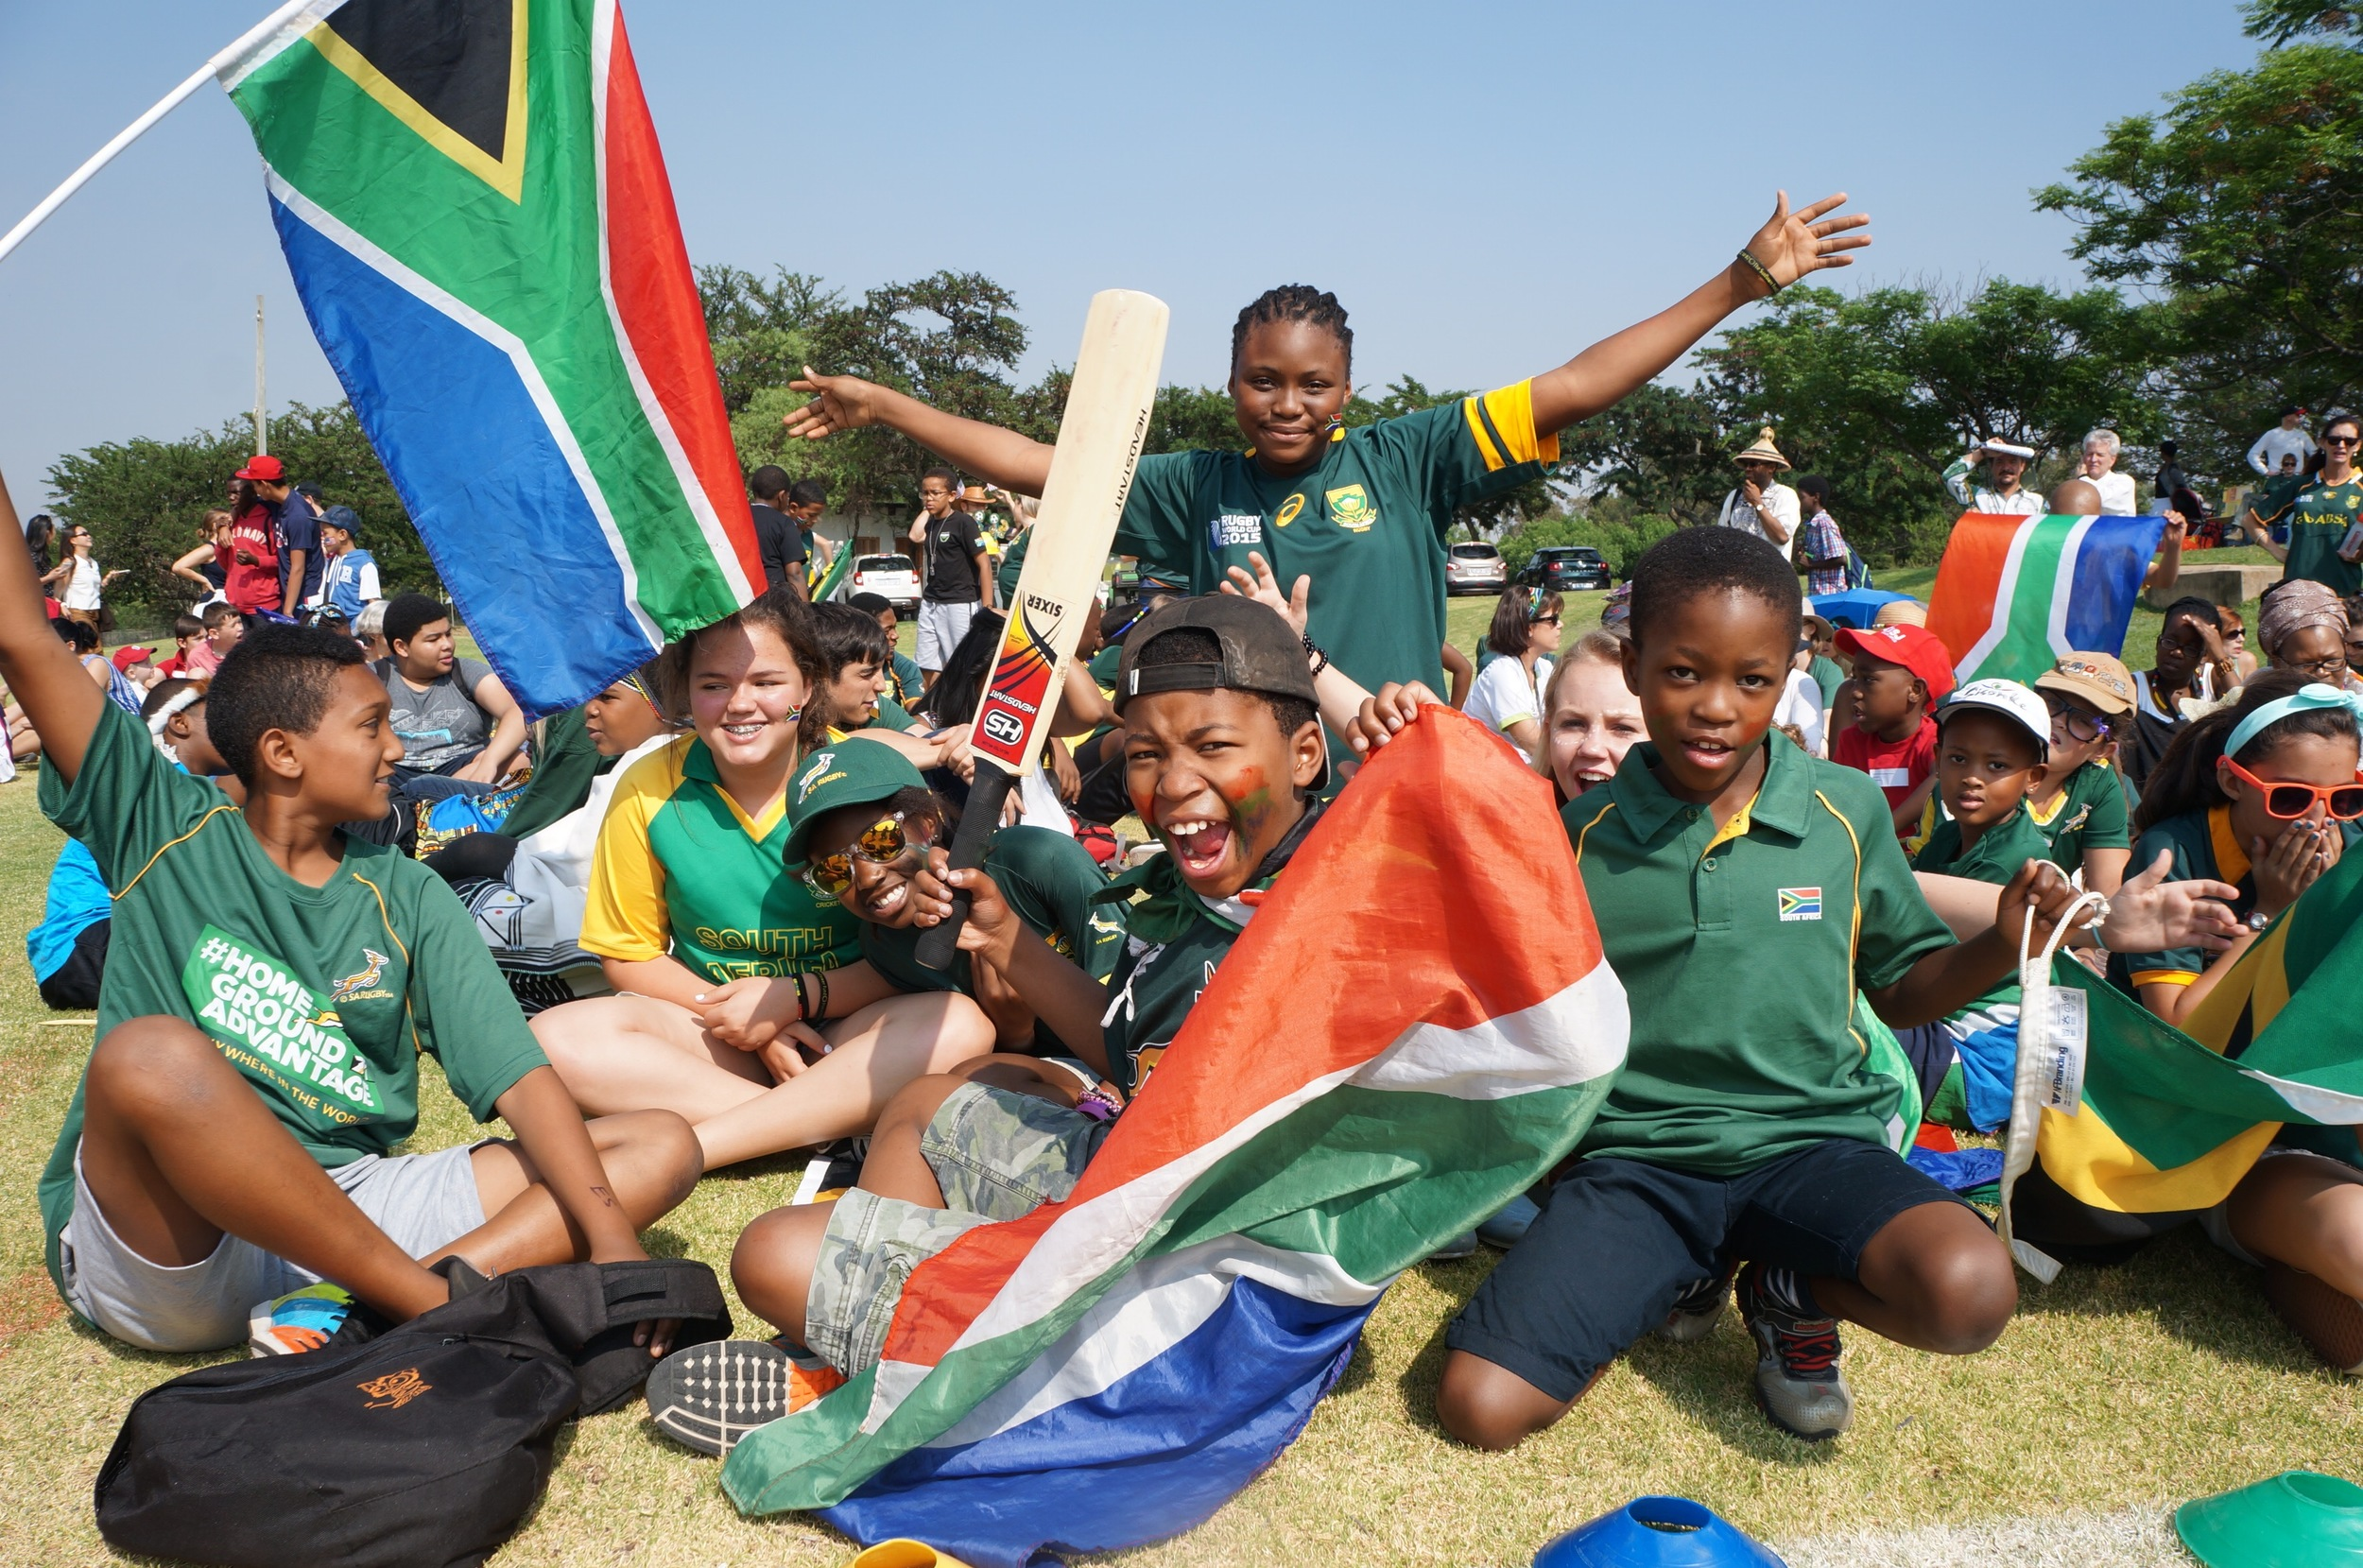 International Day at the American International School of Johannesburg. Hope, for a future of cheering.